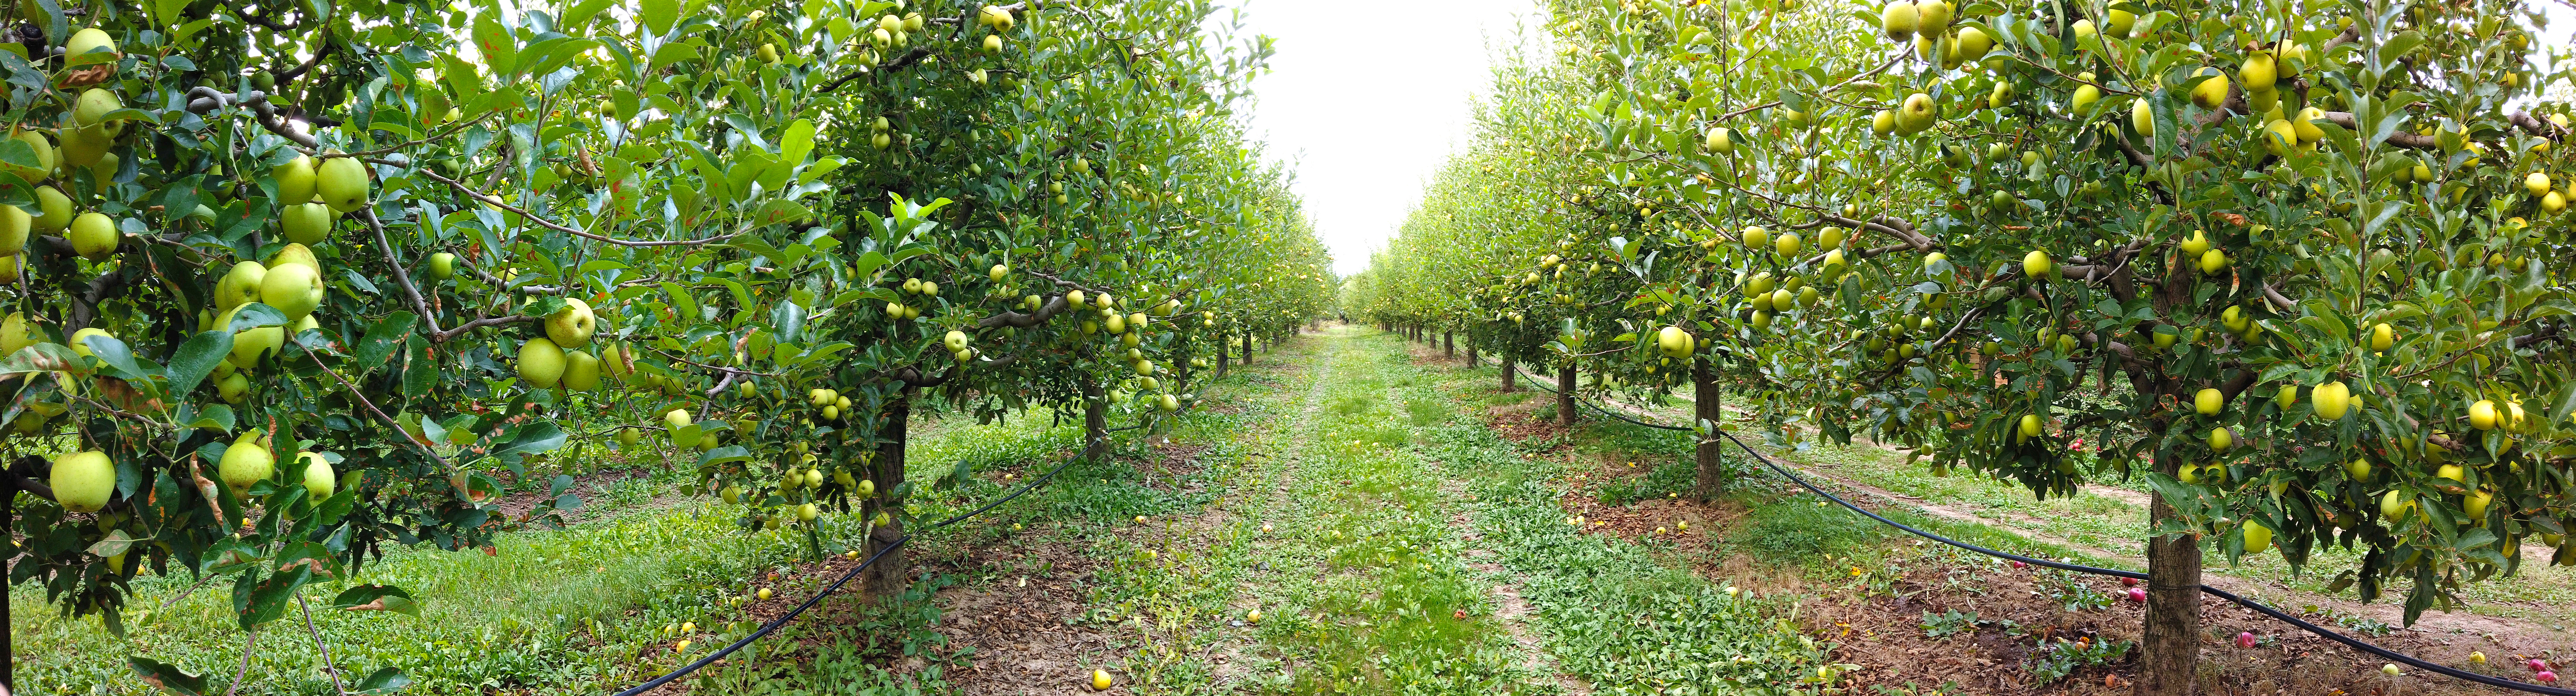 ripe apples in an orchard ready for harvesting panorama